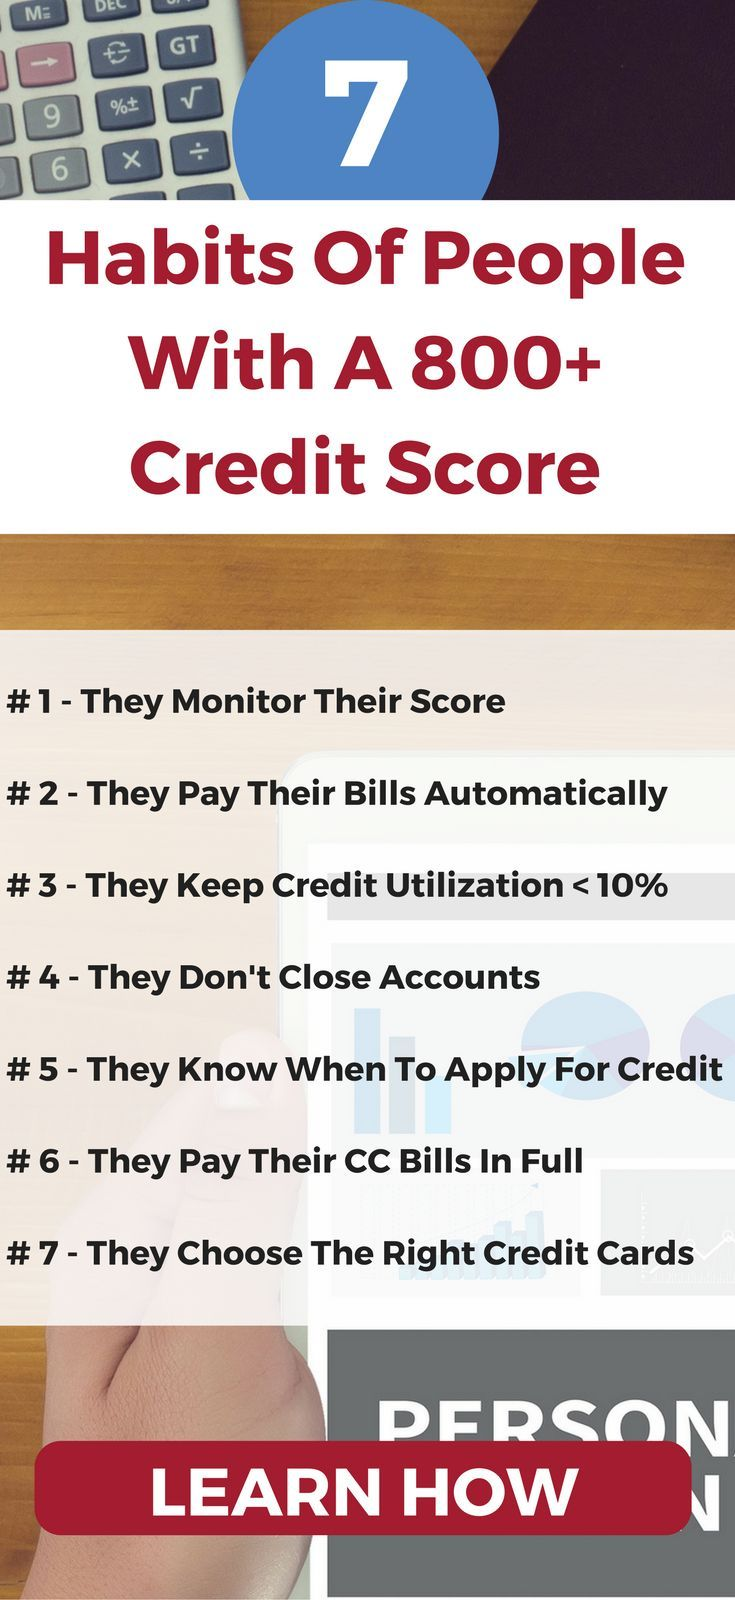 Need to repair your credit? Buying a house? Here's how Credit Sesame can help. Plus, 7 credit score tips.